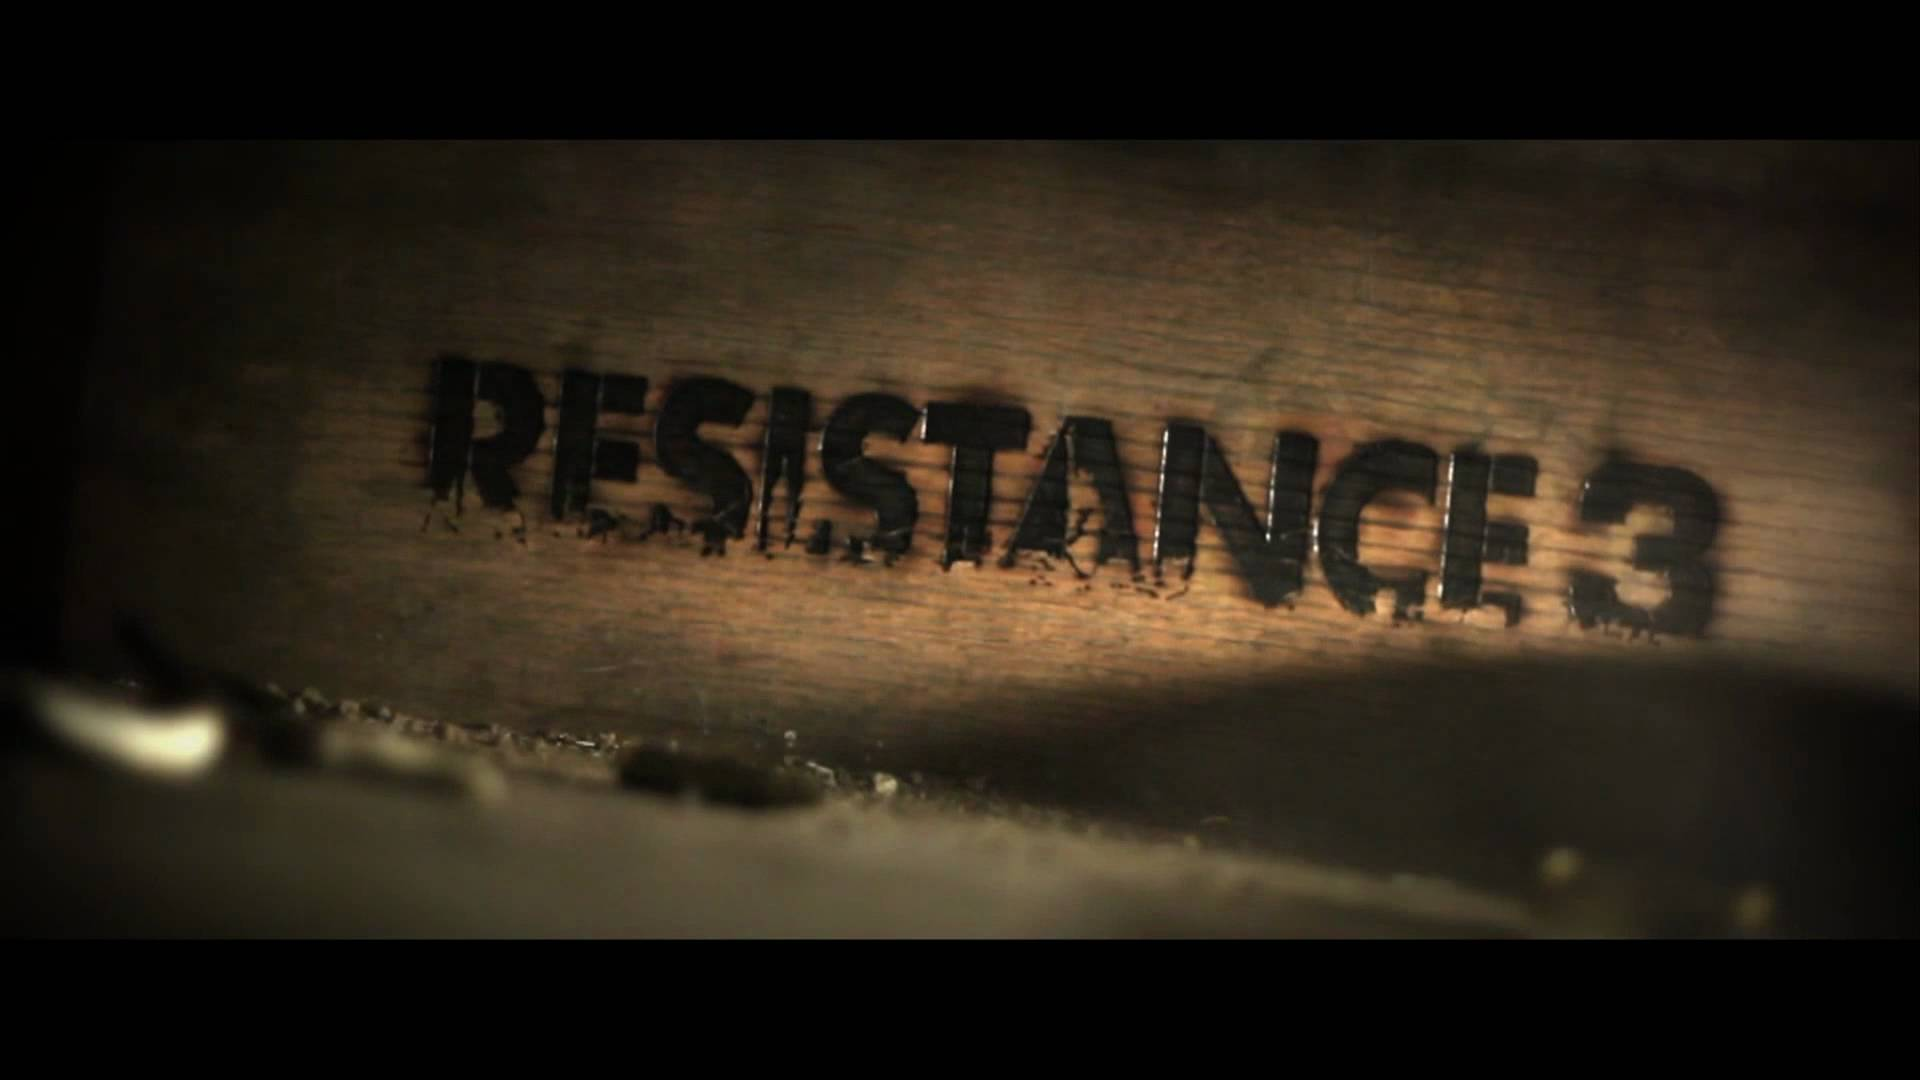 Official Resistance 3 Live Action Teaser Trailer  [HD] - Pixel Enemy